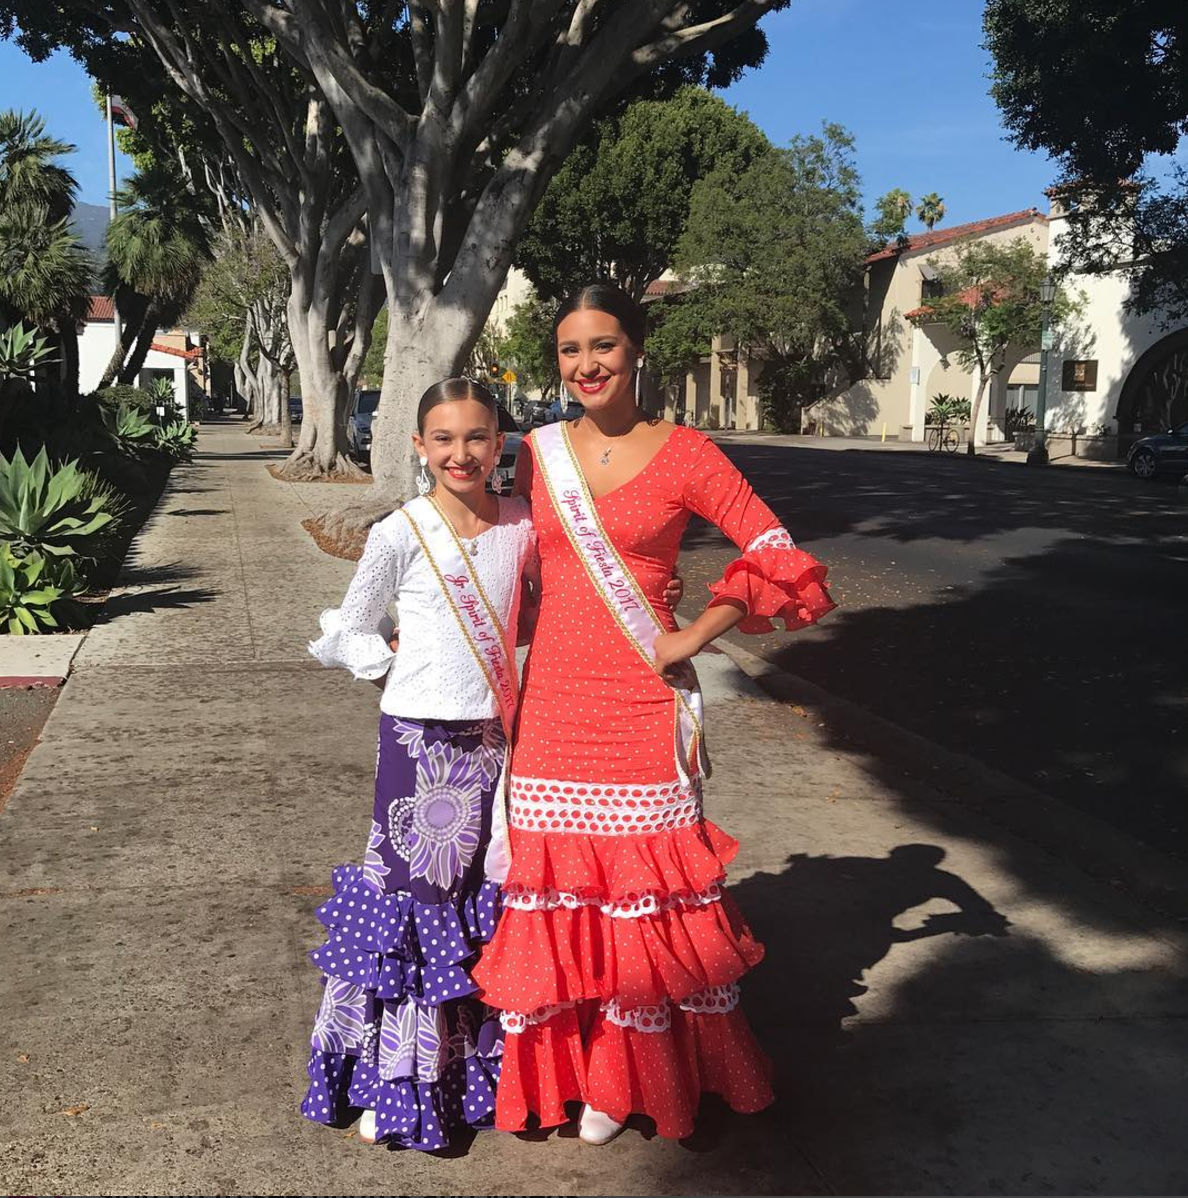 2017 Spirit of Fiesta, Norma Escárcega (right), and Junior Spirit of Fiesta, Eve Flores |  Image:  Montecito Lifestyle